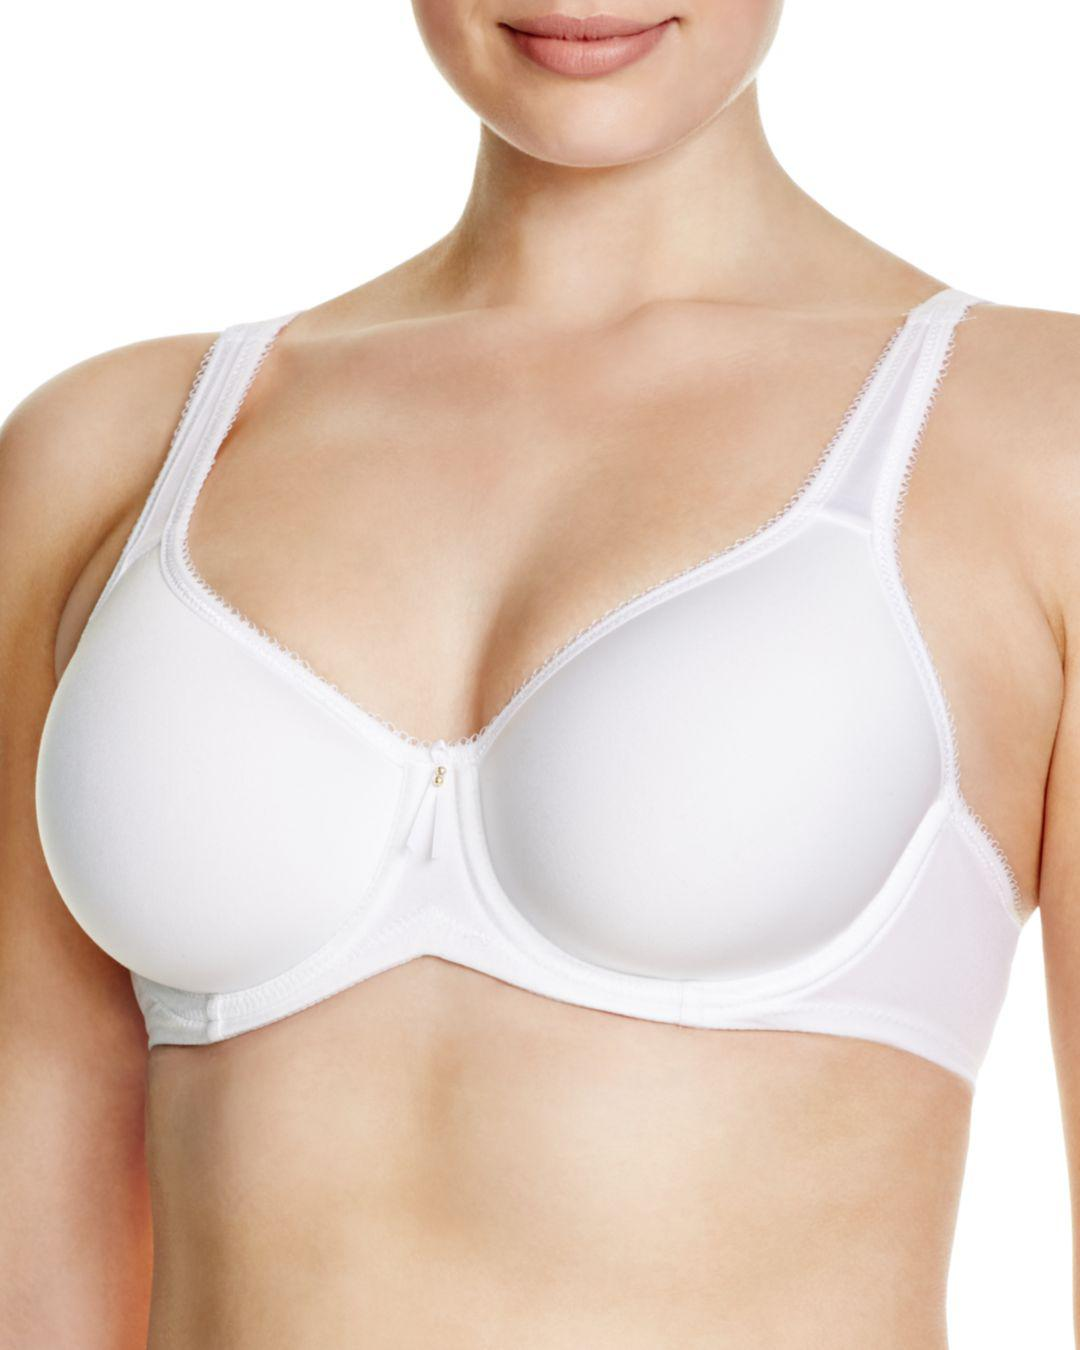 f5022bae0fd Wacoal Basic Beauty Contour Spacer Bra 853192 in White - Lyst